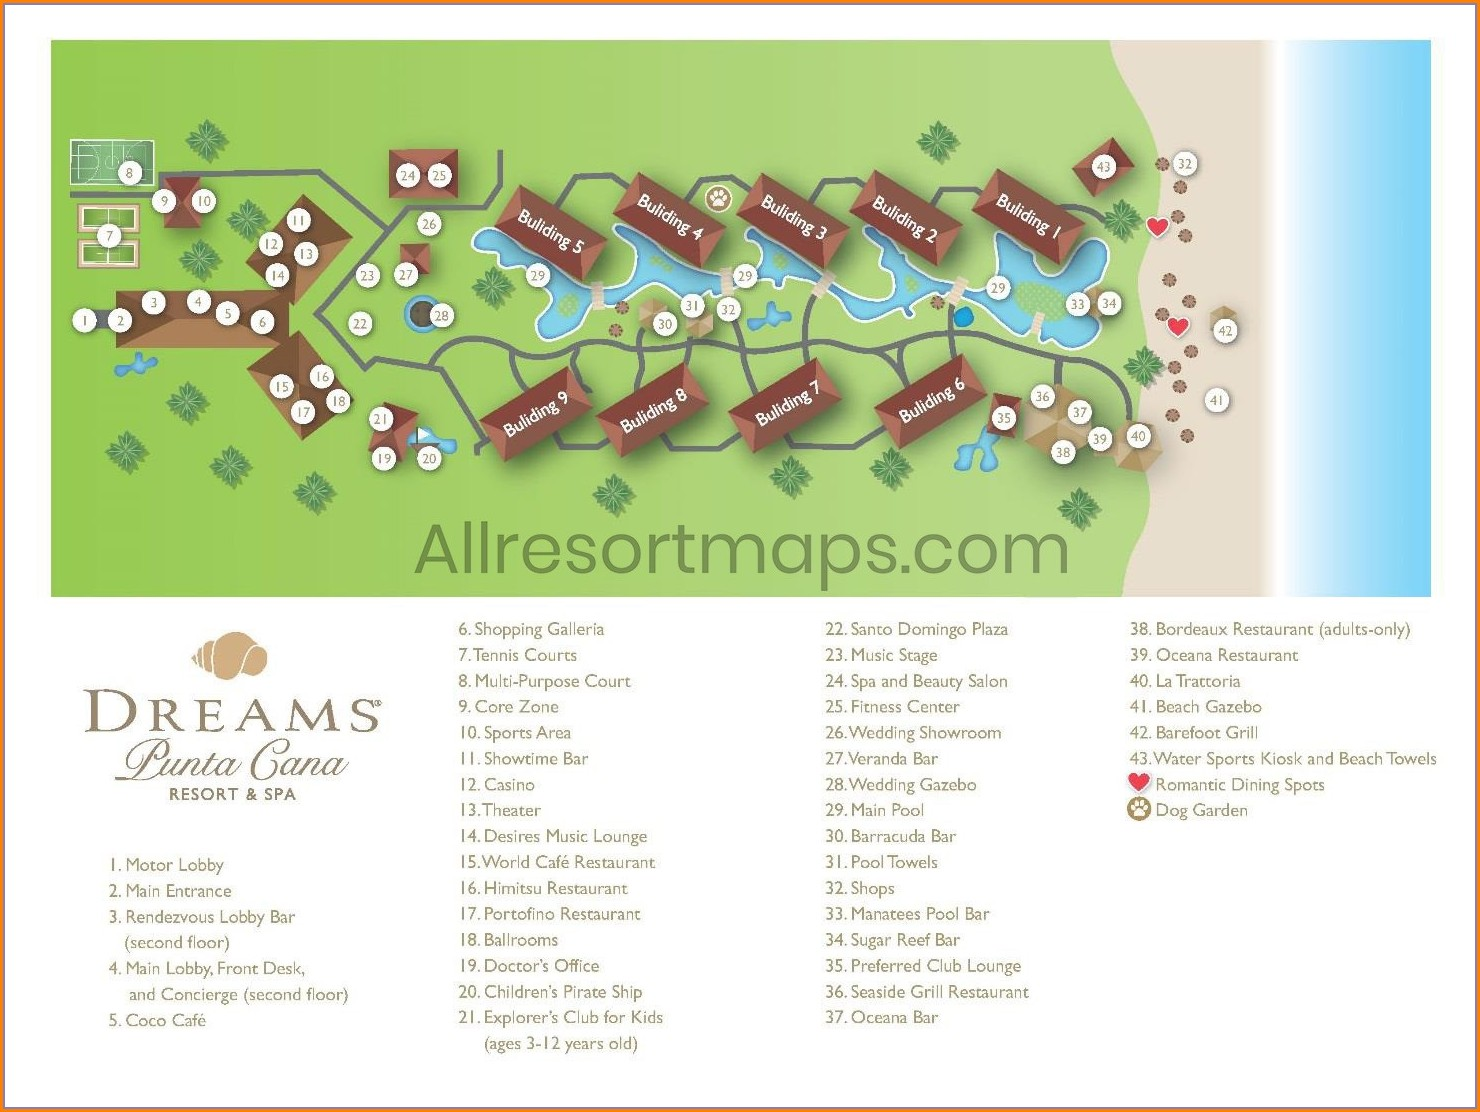 Dreams Palm Beach Punta Cana Map